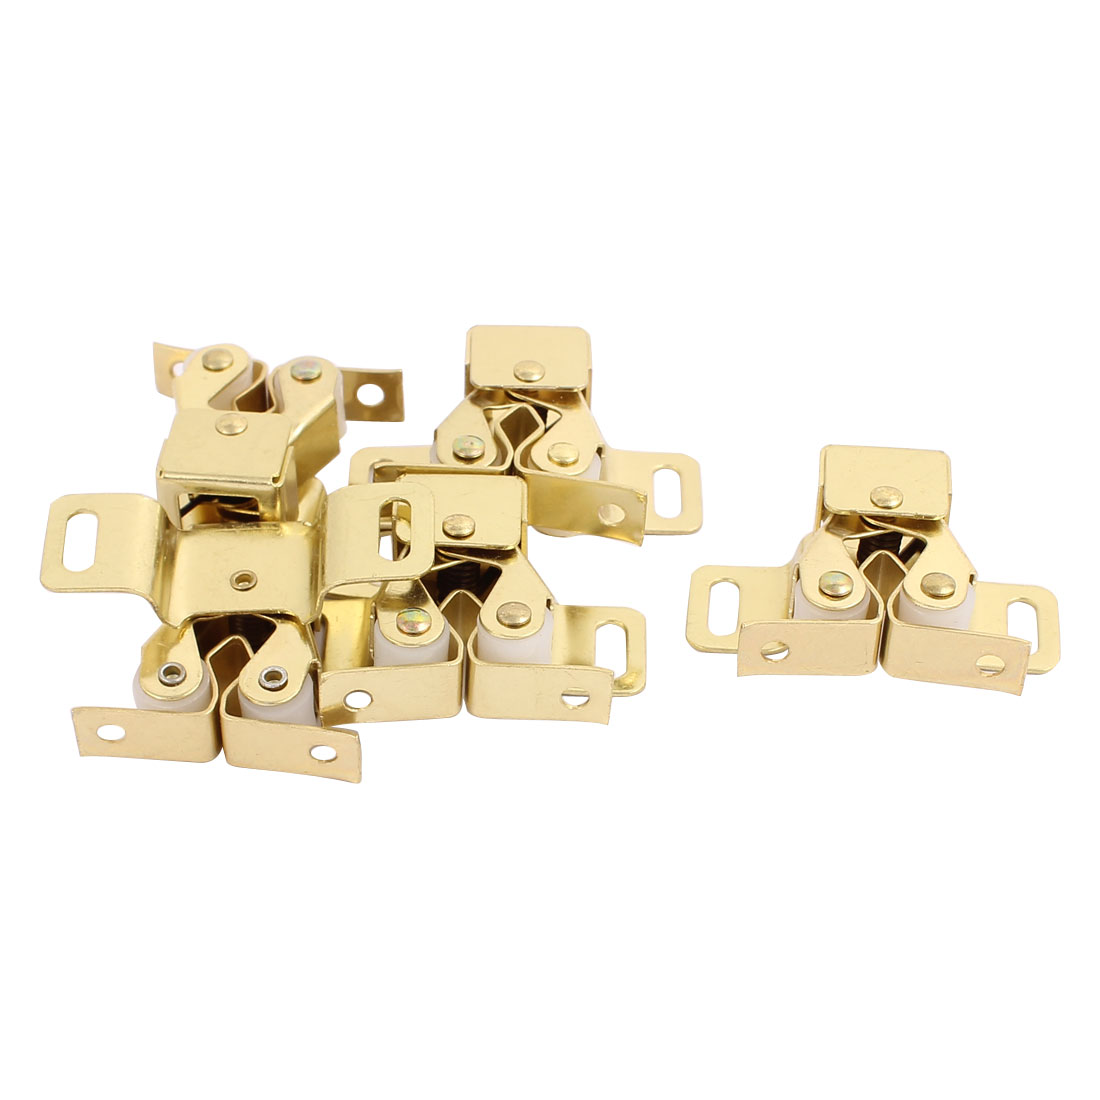 Cupboard Closet Cabinet Door Double Ball Roller Catch Latch 48 x 30 x 20mm Gold Tone 5pcs